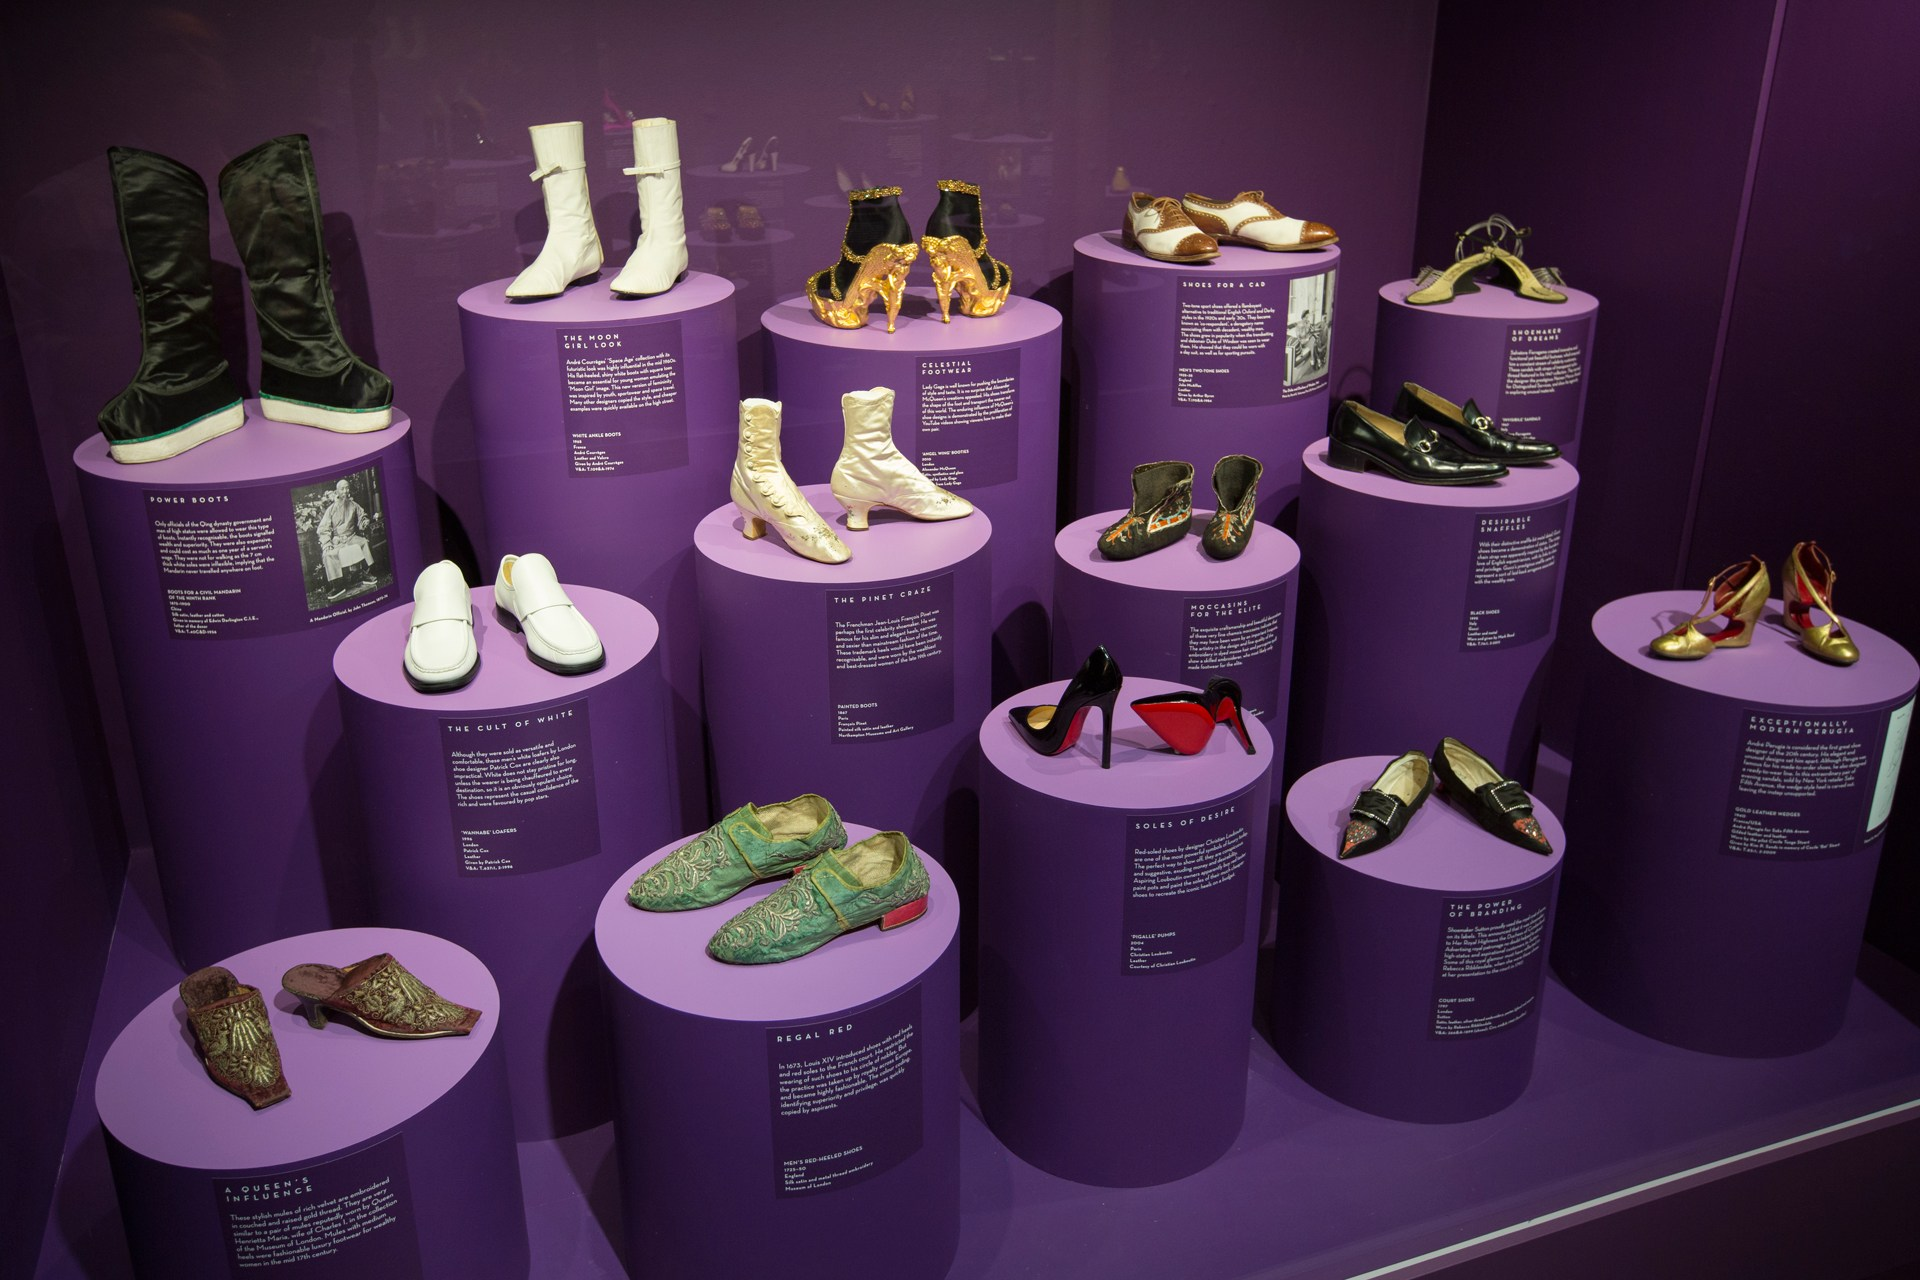 4-Installation-view-of-Shoes-Pleasure-and-Pain-at-the-VandA-Victoria-and-Albert-Museum.jpg